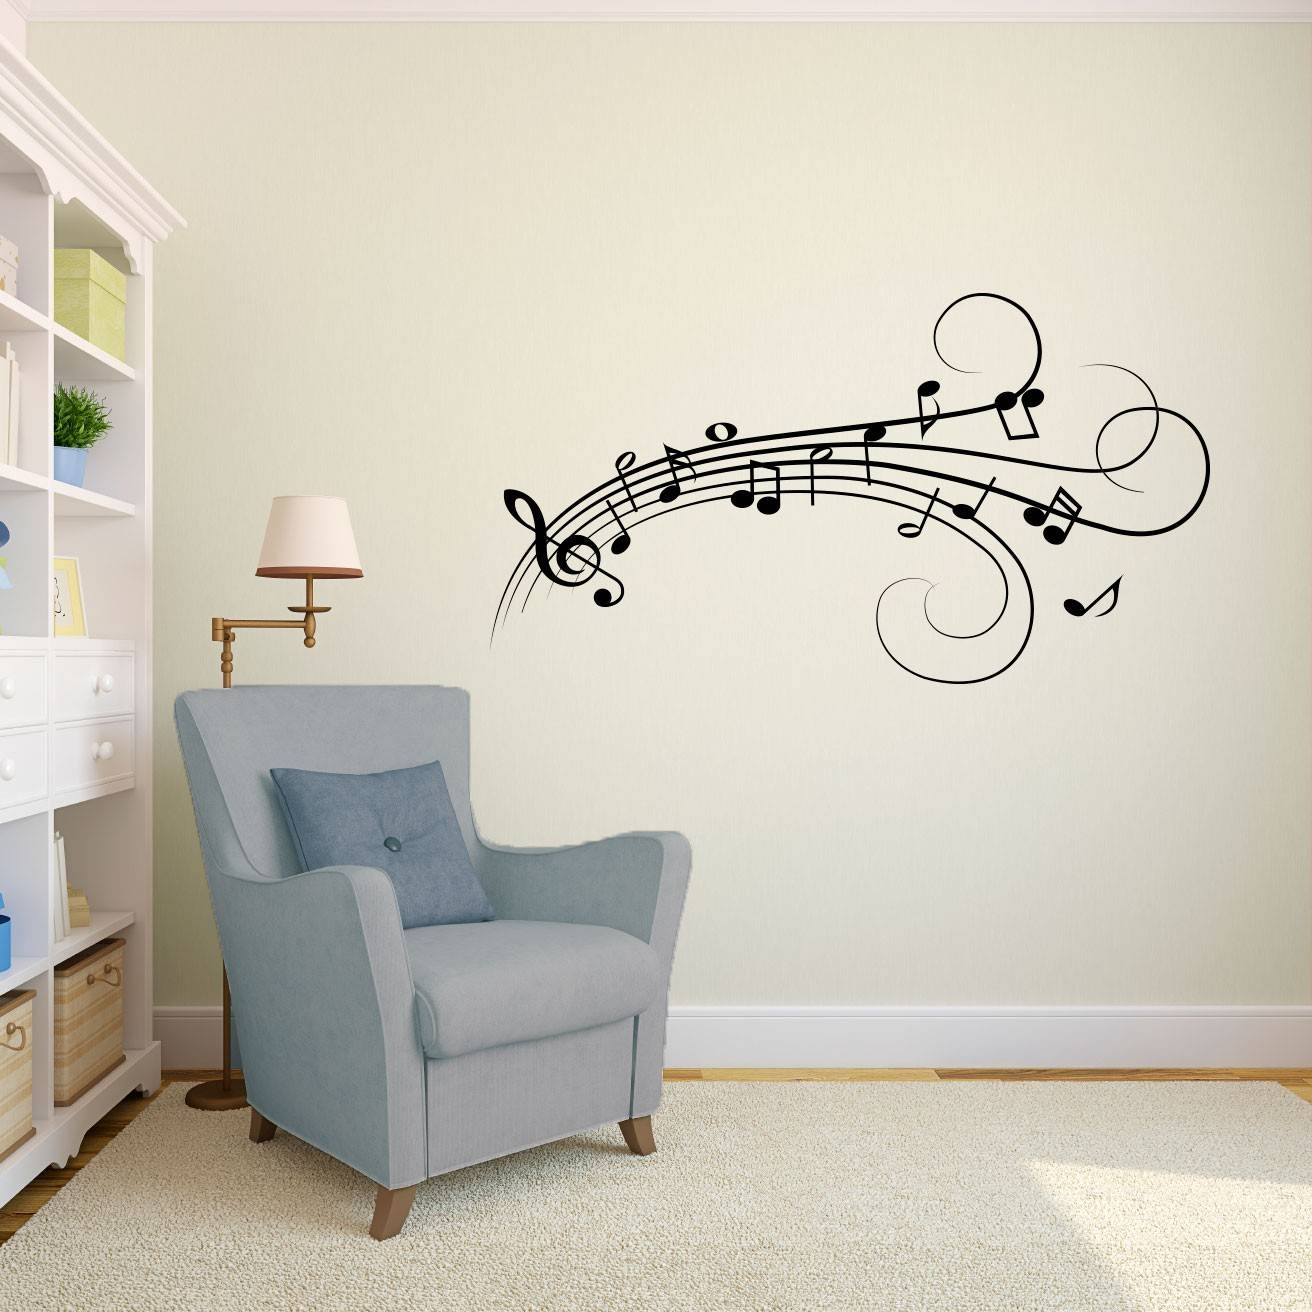 Music Note Wall Art Fabulous As Metal Wall Art For Metal Wall Art Throughout Most Recently Released Metal Music Notes Wall Art (View 16 of 20)